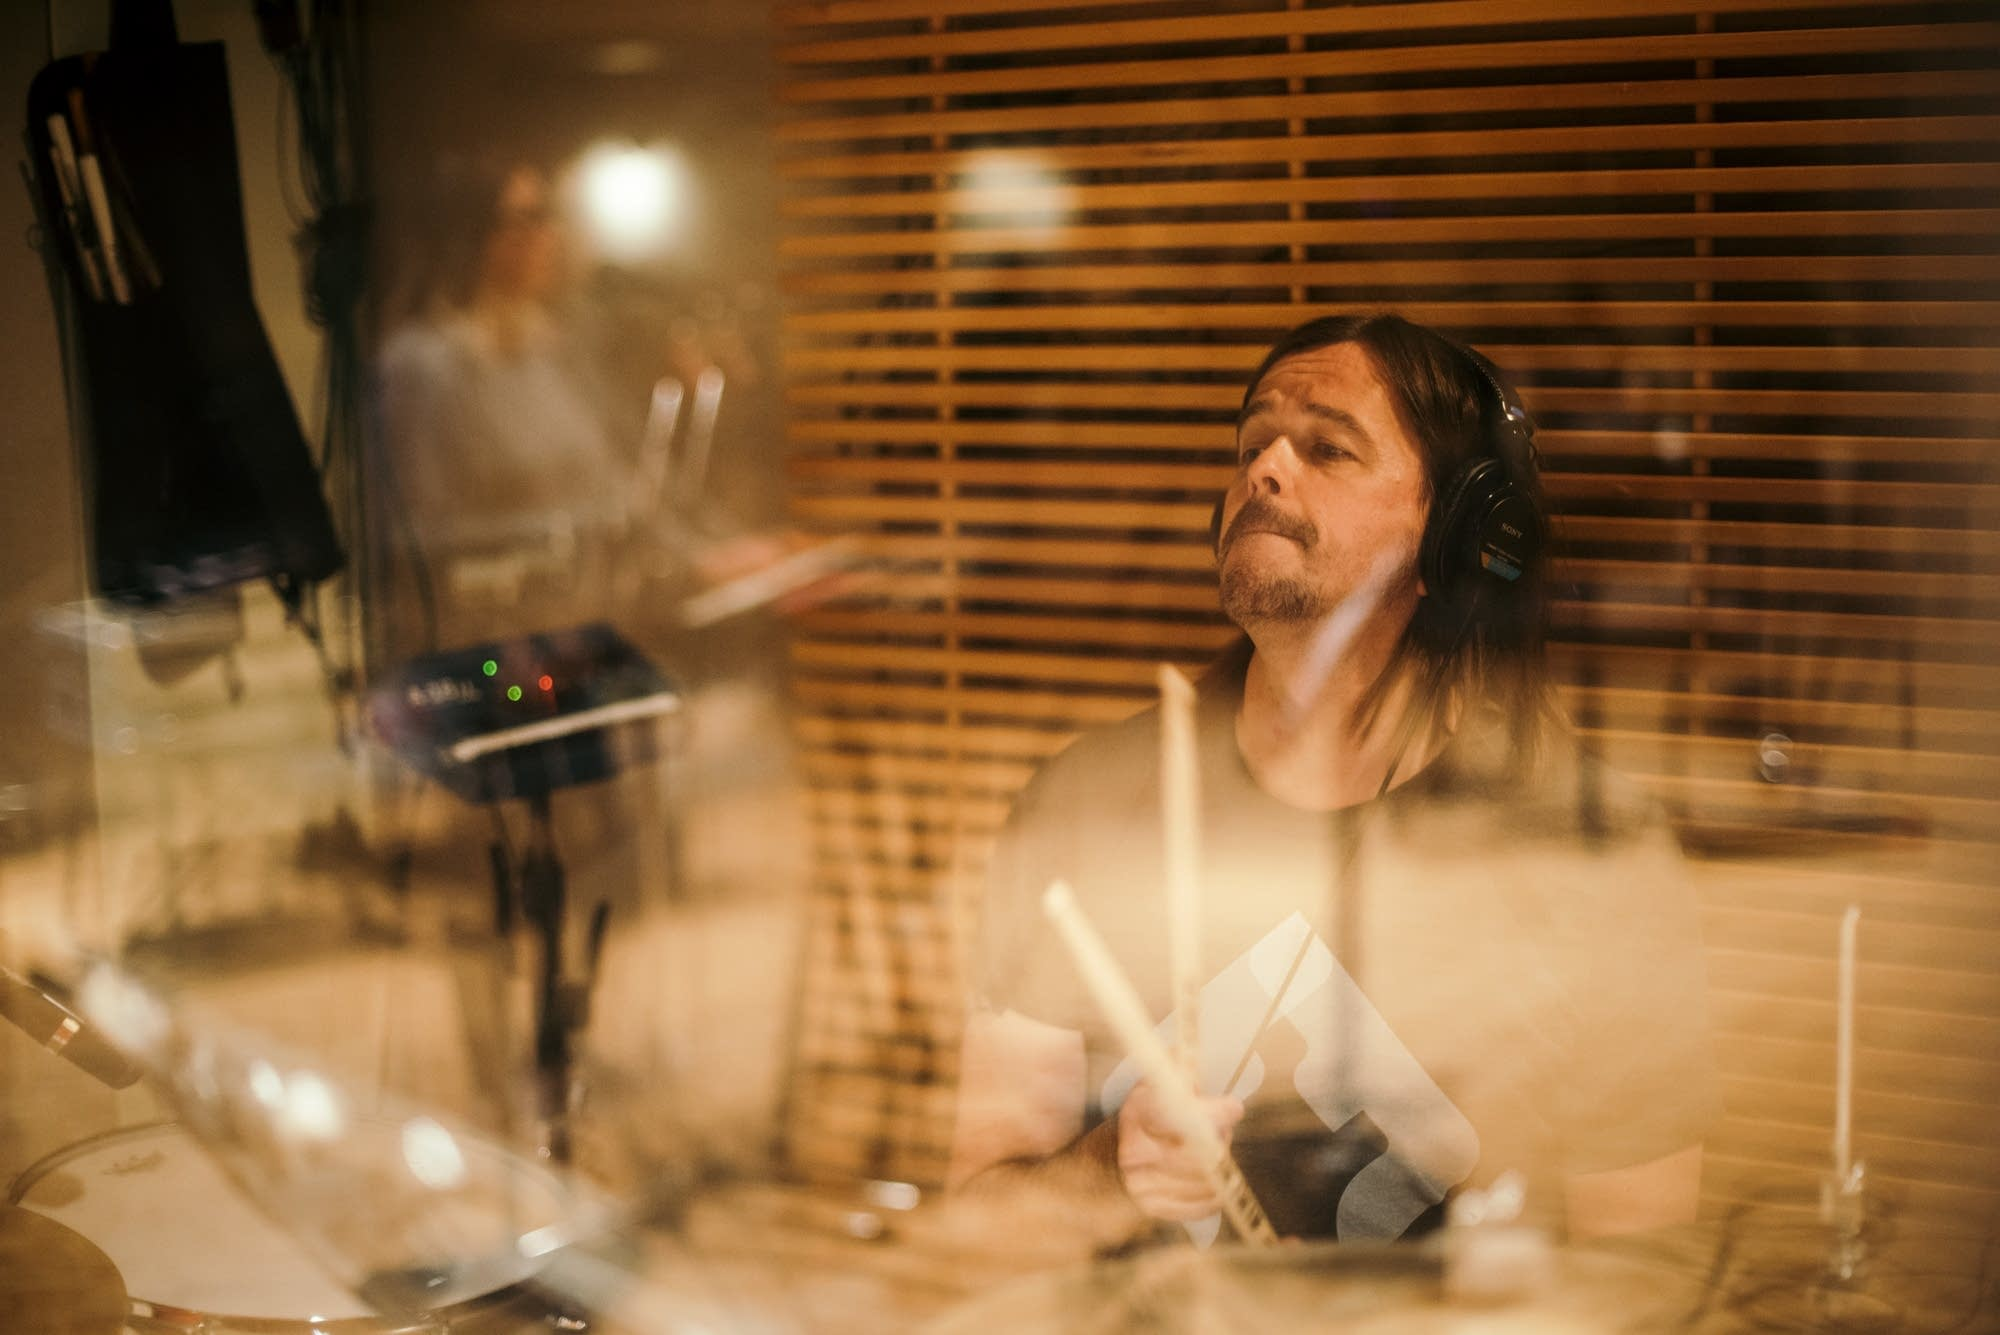 Slowdive perform in The Current studio